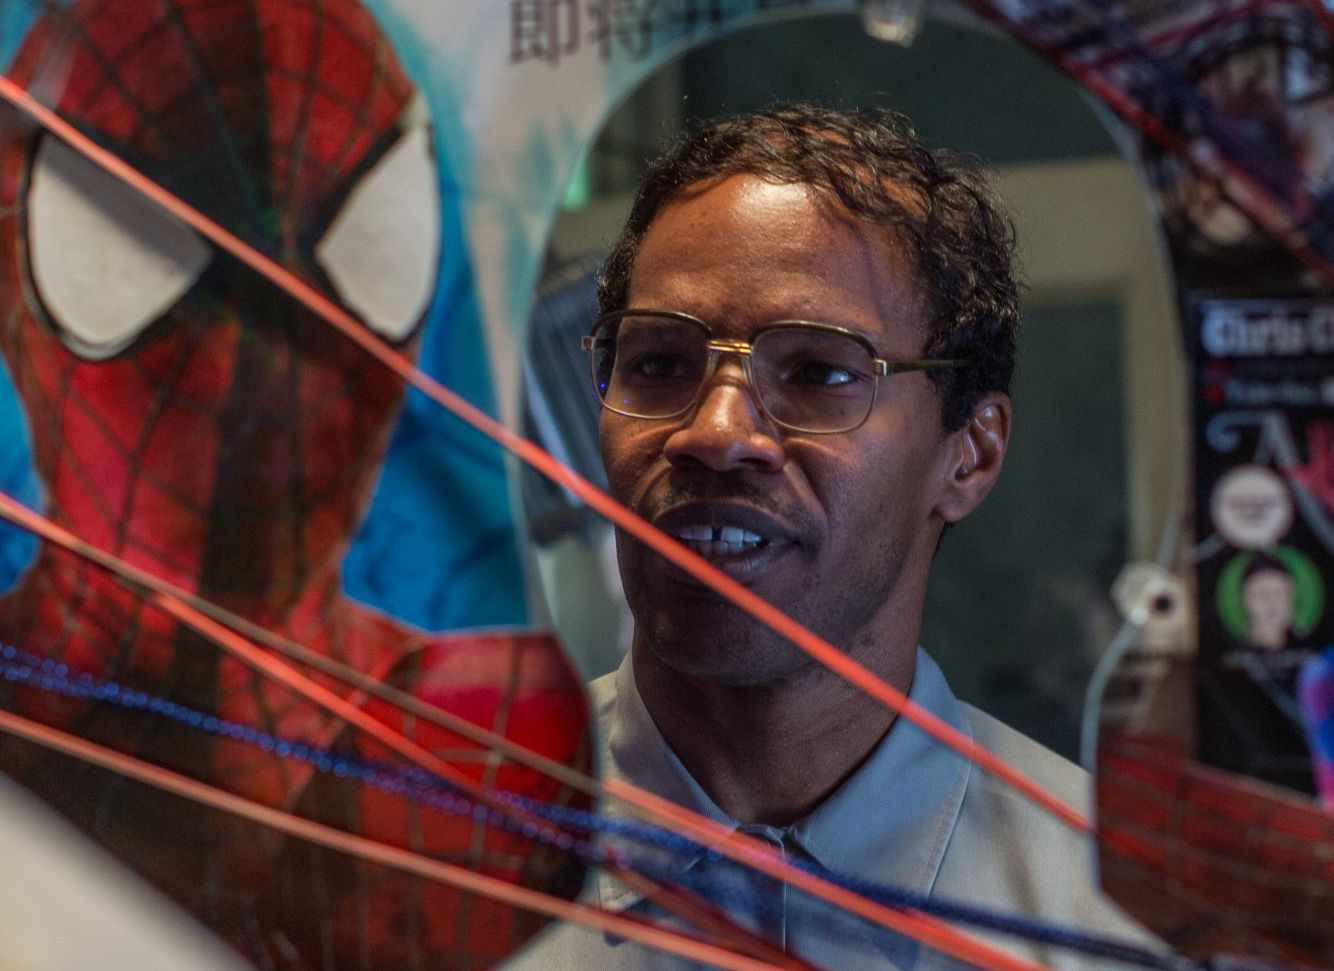 Jamie Foxx in a Spider-web